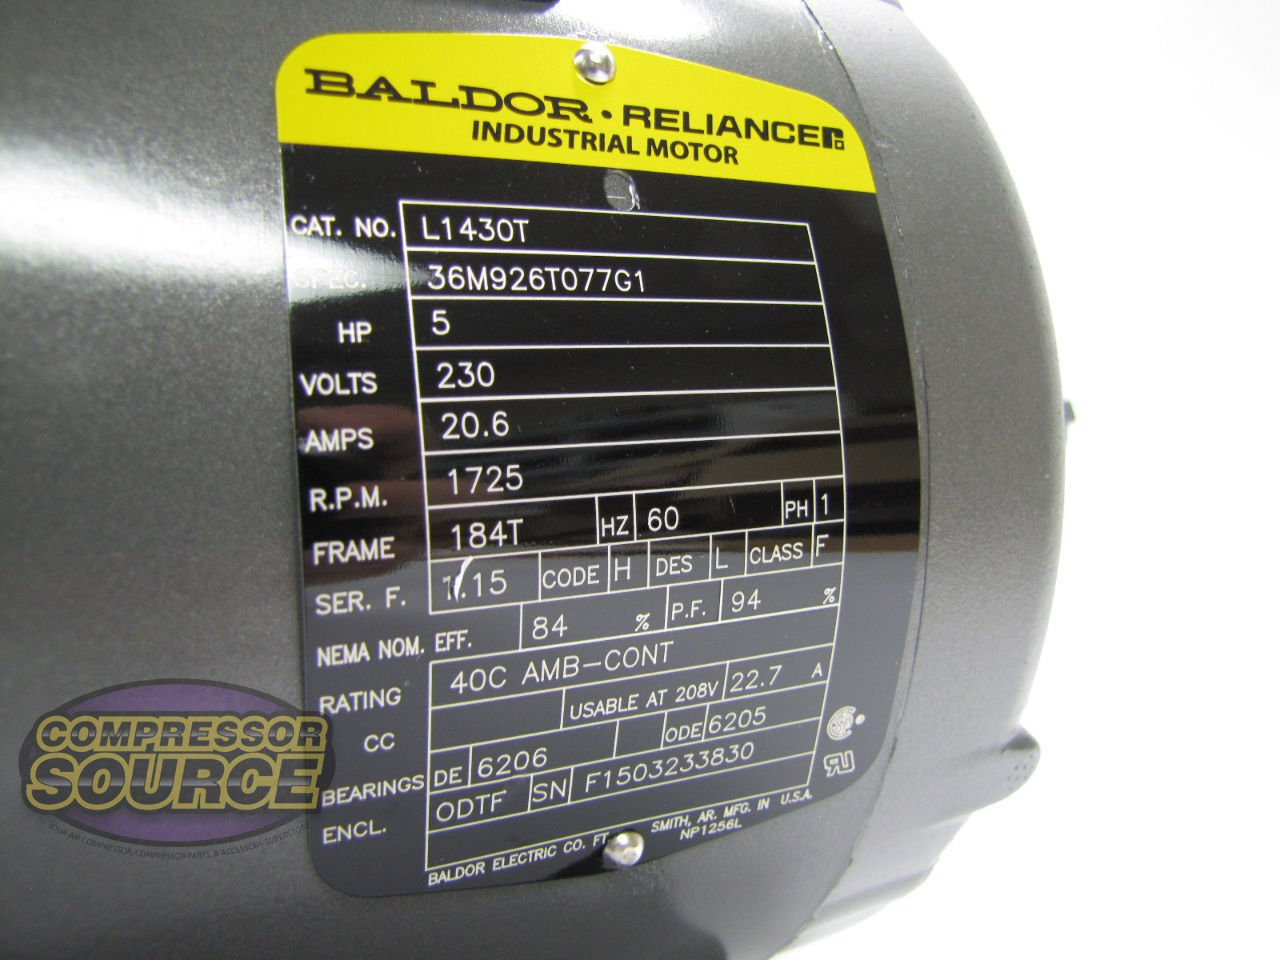 Baldor 5hp Motor Wiring Diagram 31 Images Electric Diagrams Sl1280 L1430t General Purpose Ac Single Phase 184t